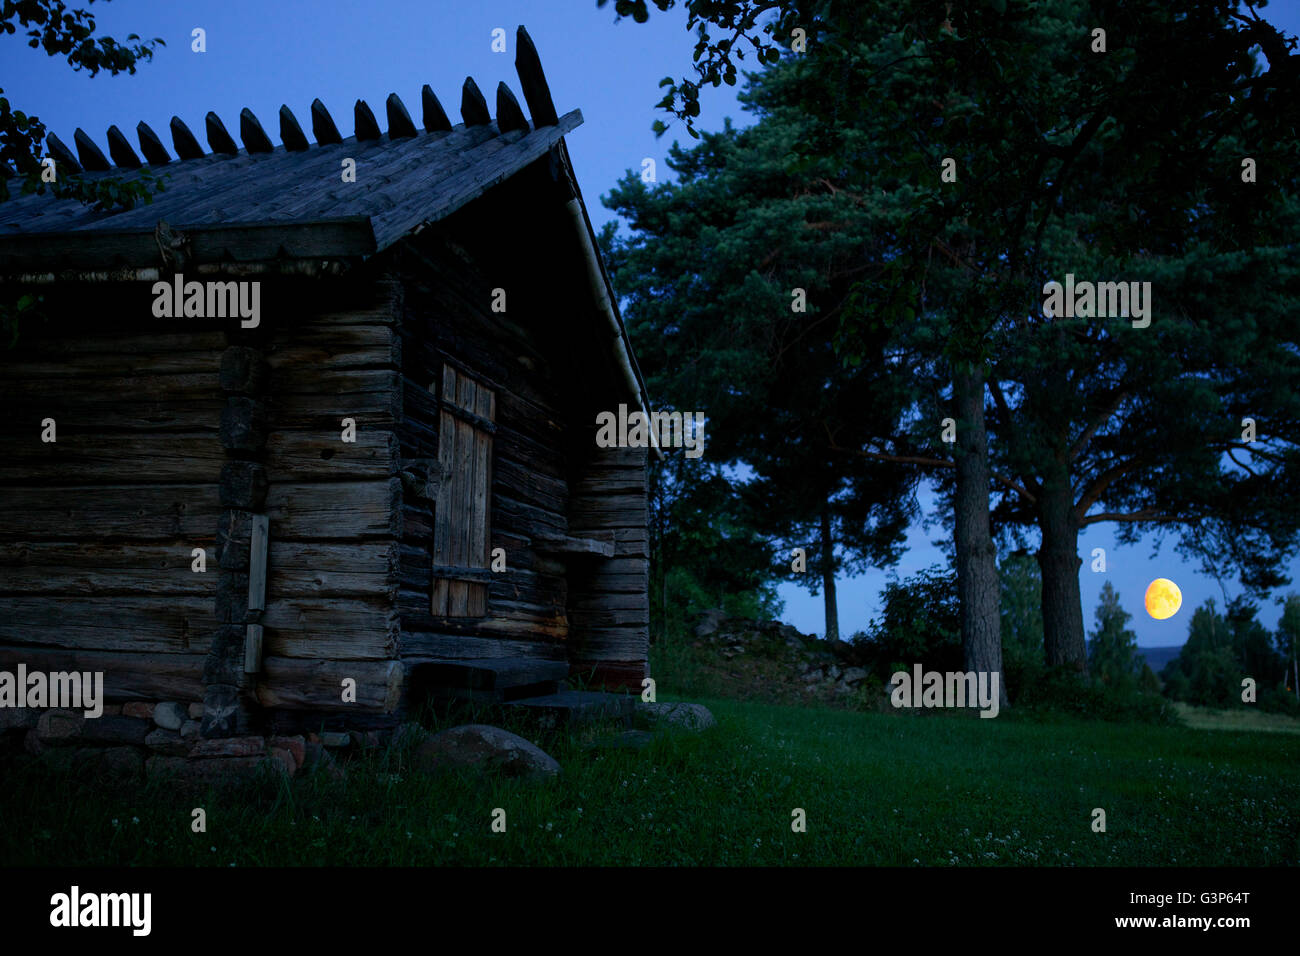 Sweden, Dalarna, Solleron, Wooden hut and moon in background Stock Photo